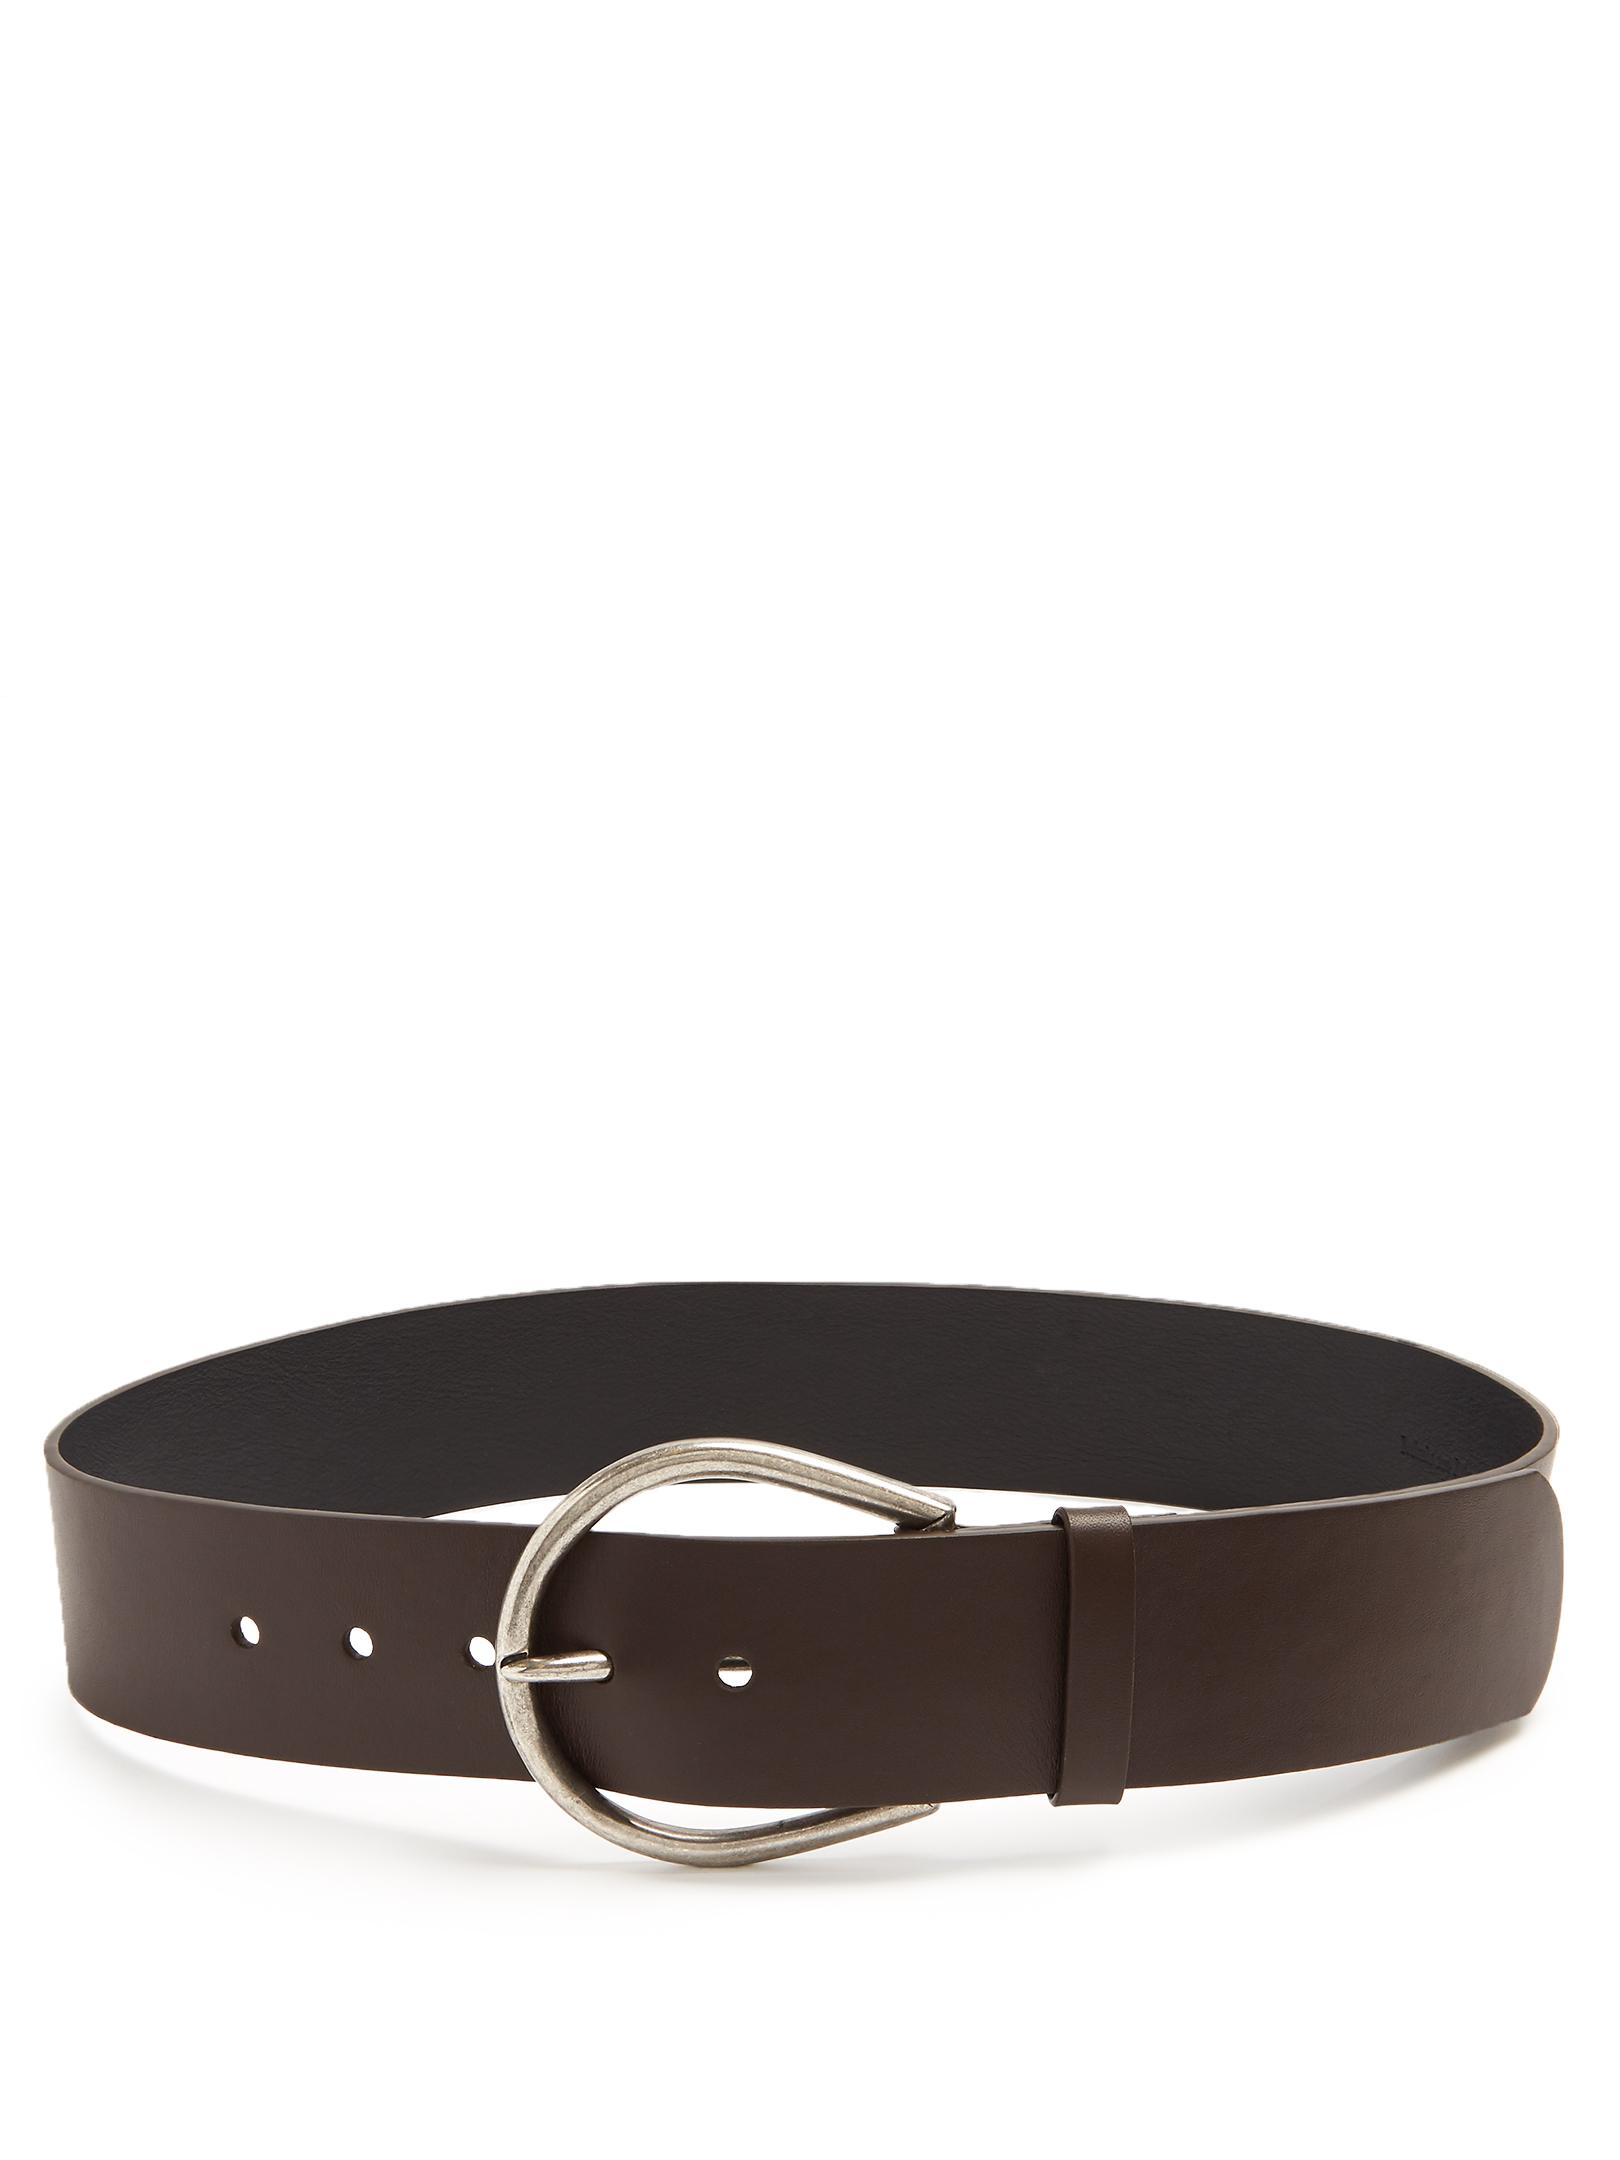 Self-tie leather belt Maison Martin Margiela